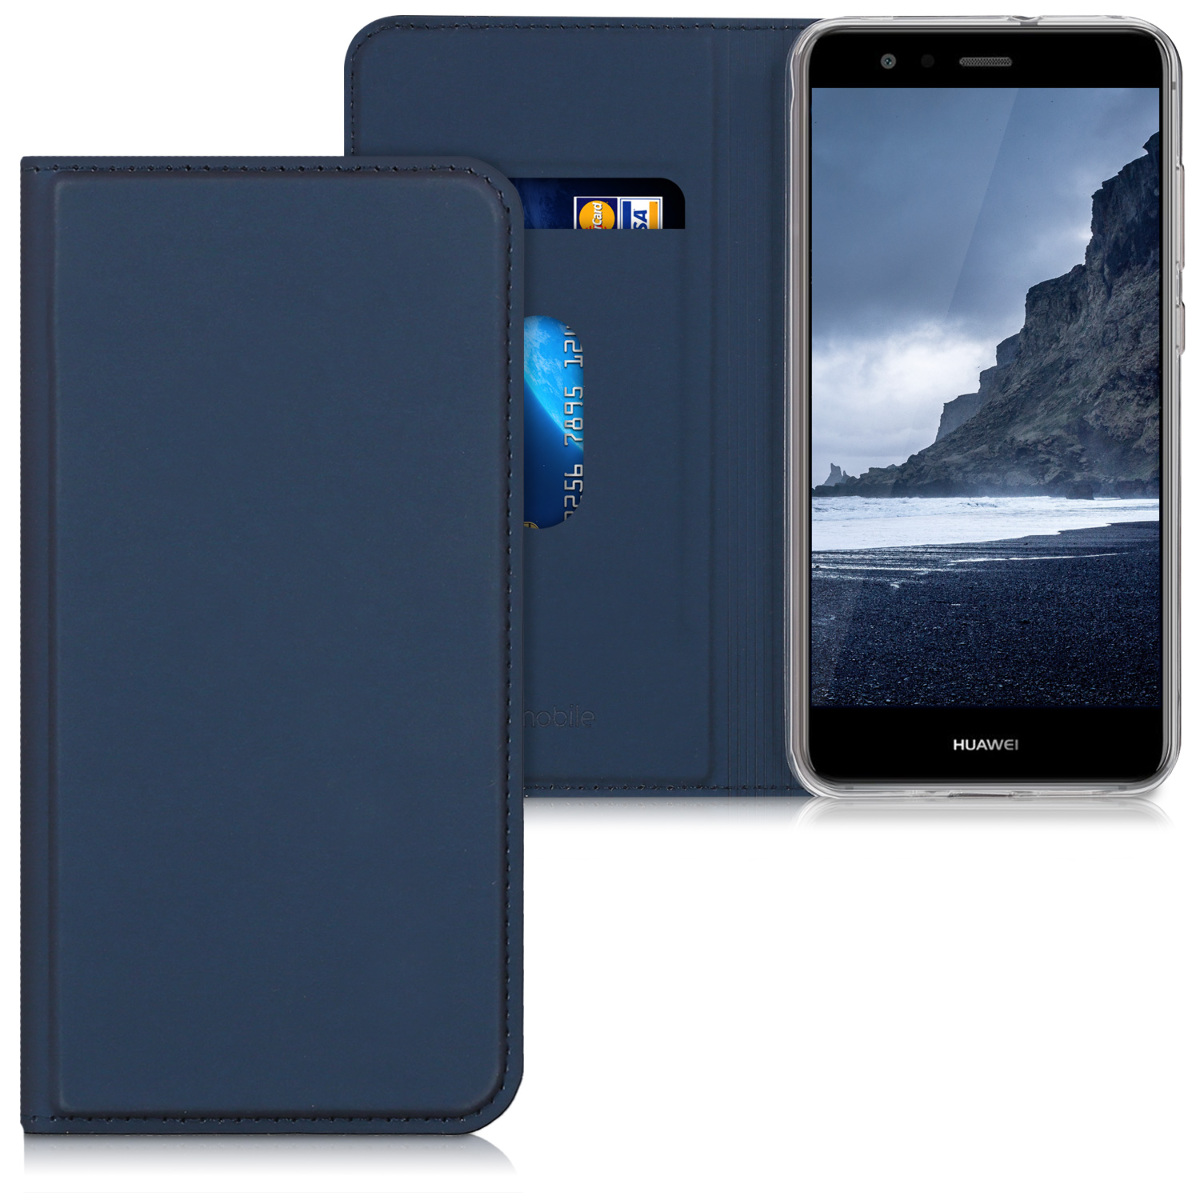 kwmobile Case for Huawei P10 Lite - Book Style Flip Folio Slim Wallet Cover with Stand Feature - Dark Blue